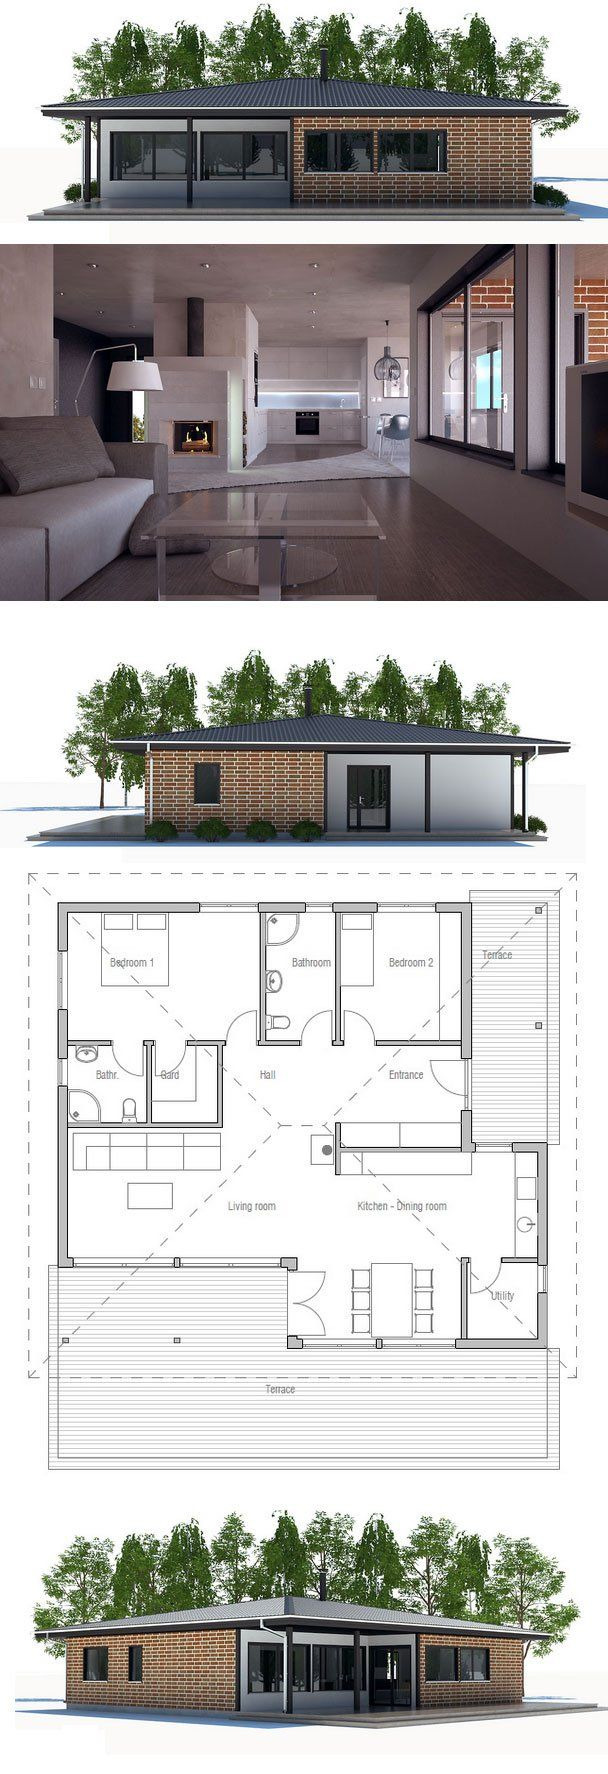 House Plans with Big Windows 2021